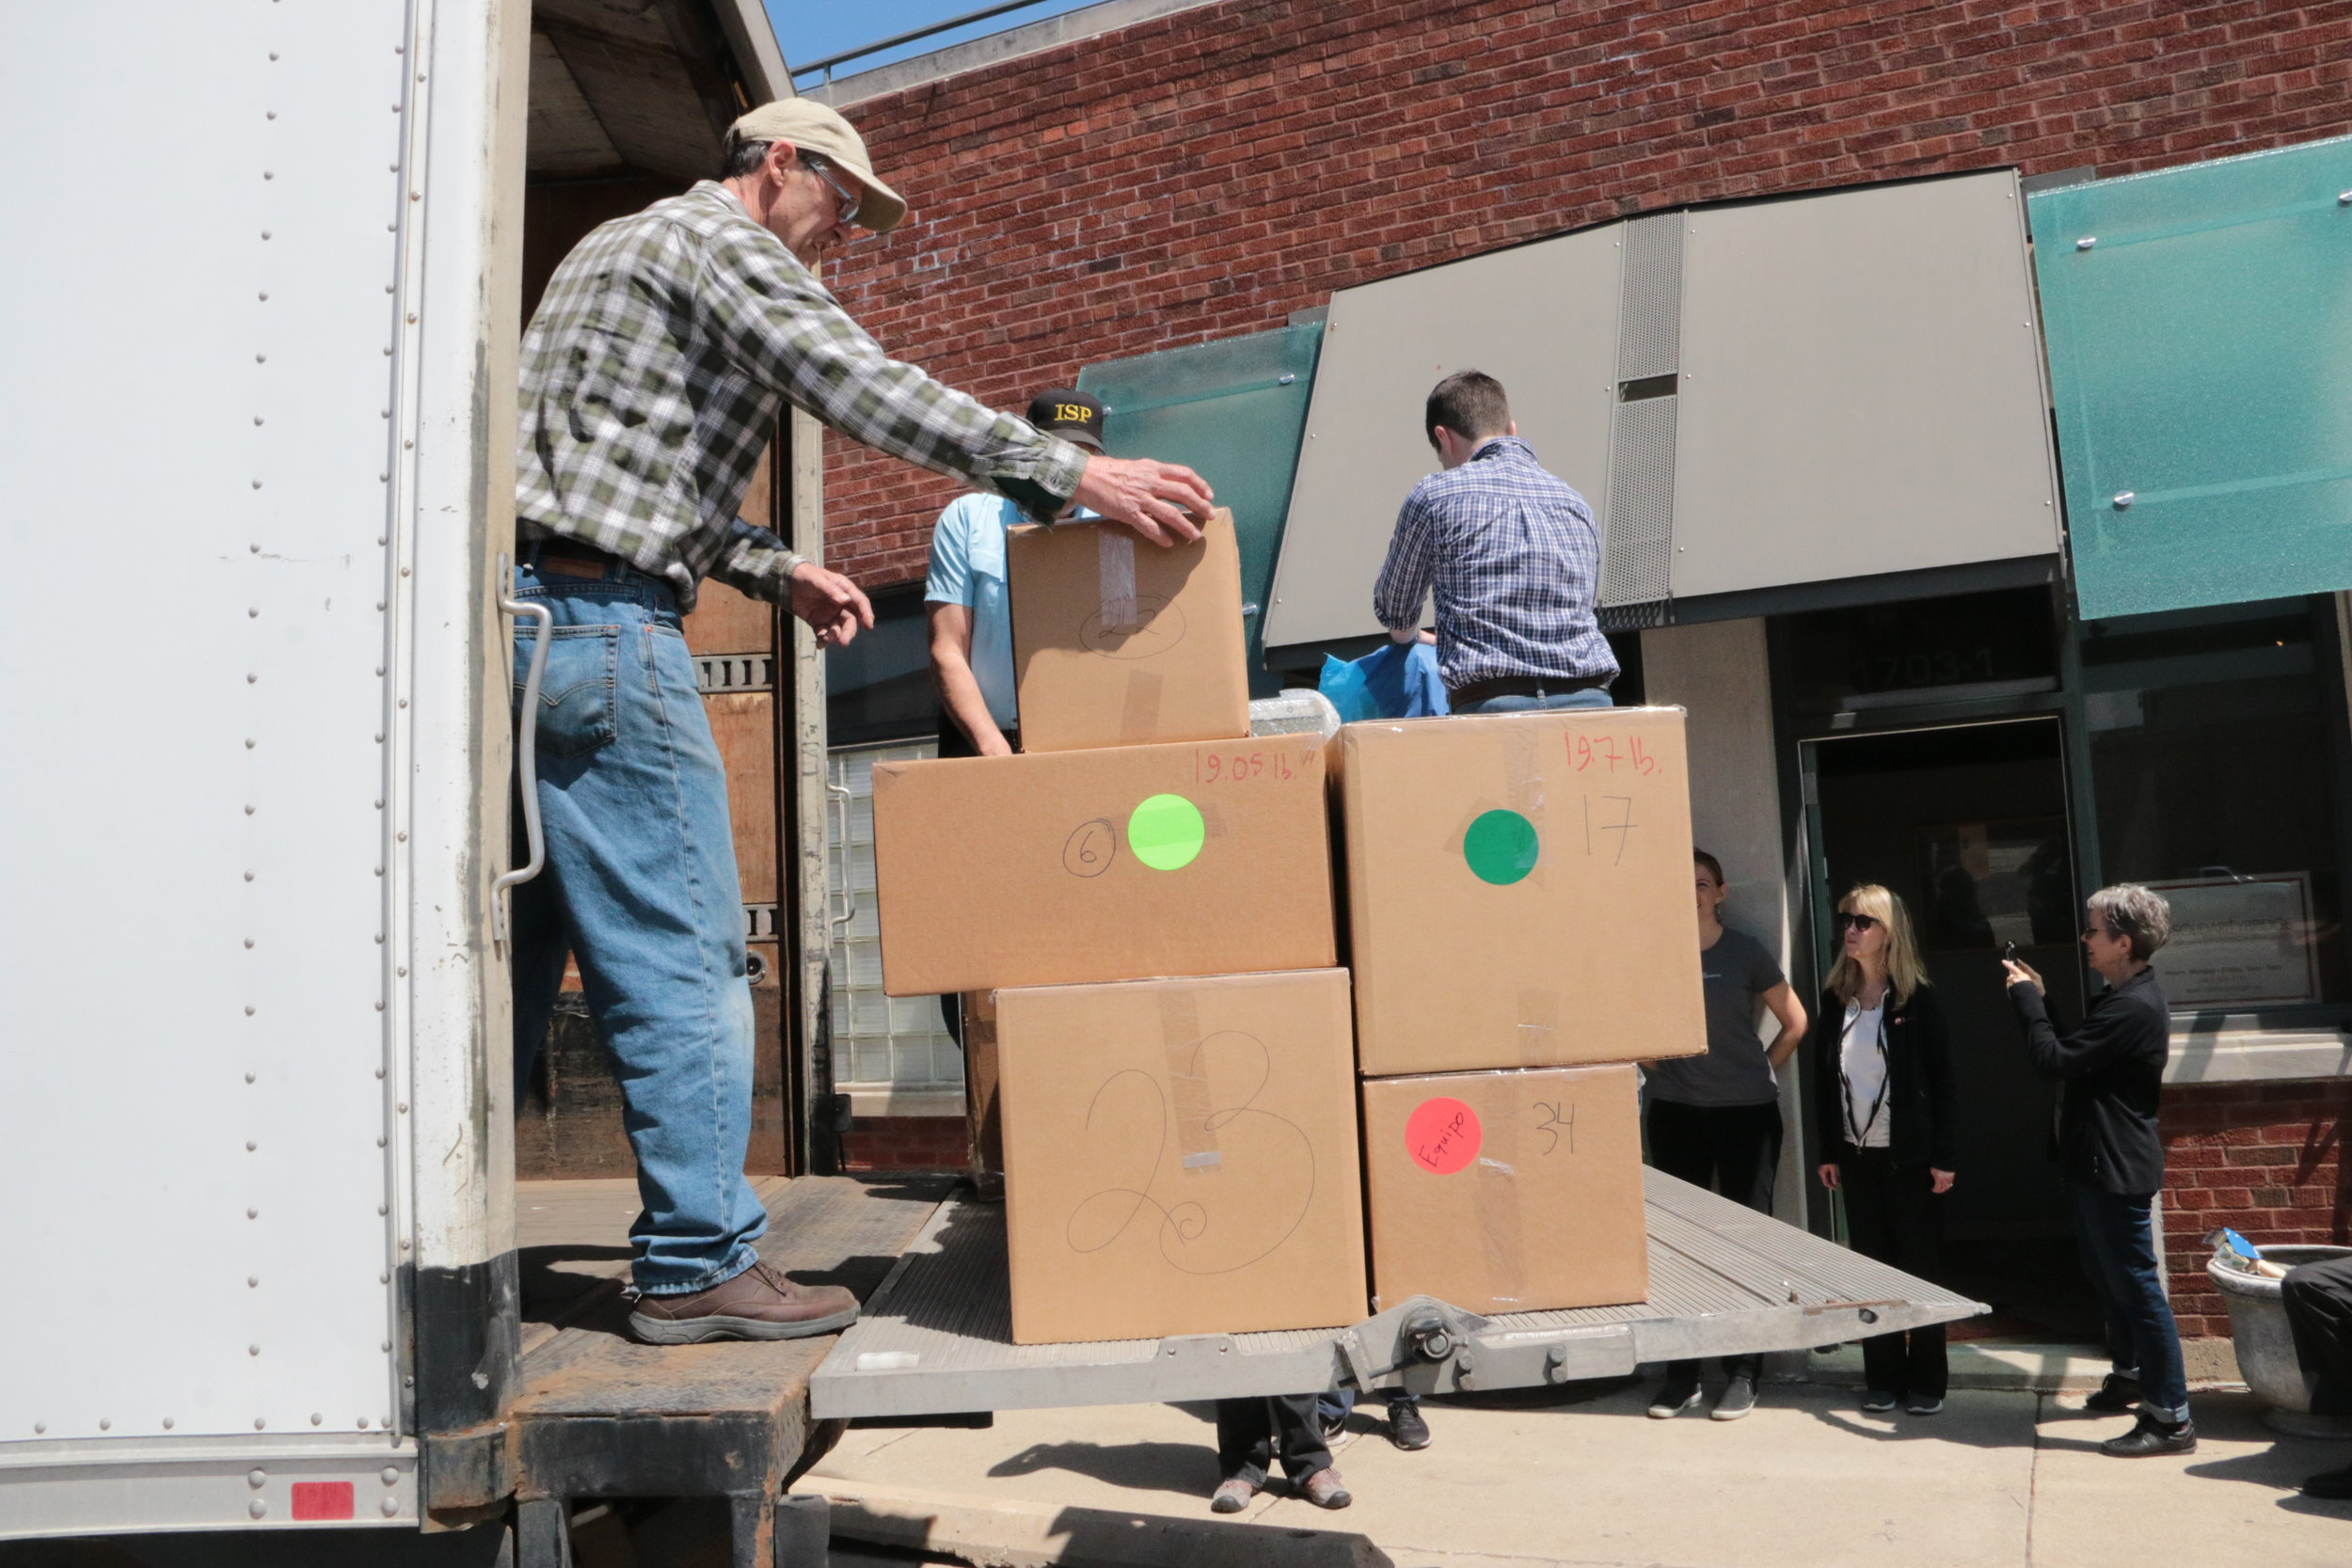 """Loading a Shipping Container - Pat has also been on hand for several """"container loading days"""" when we pack hundreds of boxes onto a trailer truck to be shipped to Bolivia. Thanks Pat!"""